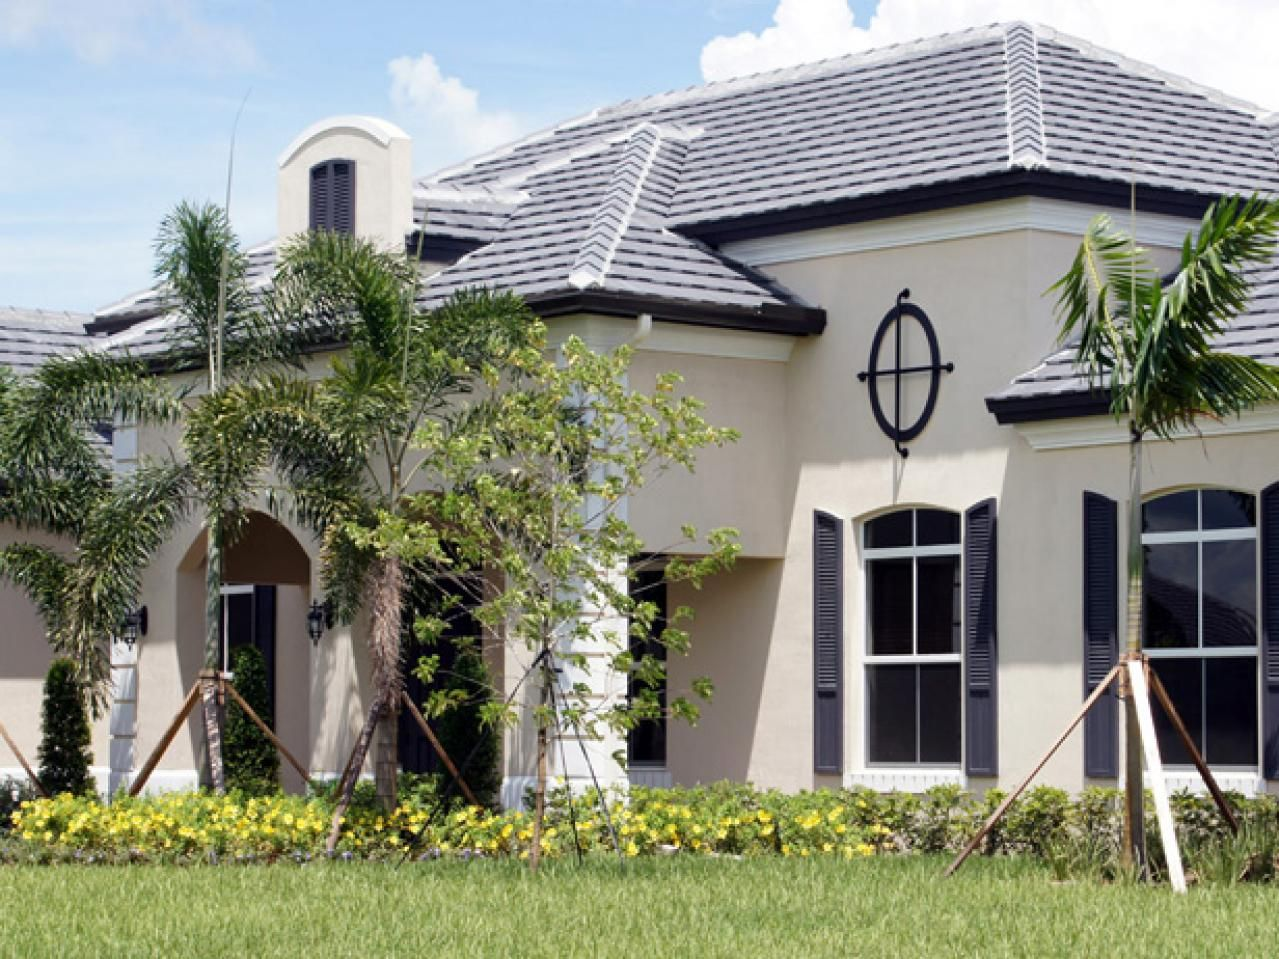 How to Paint the Exterior of a House Exterior Exterior house